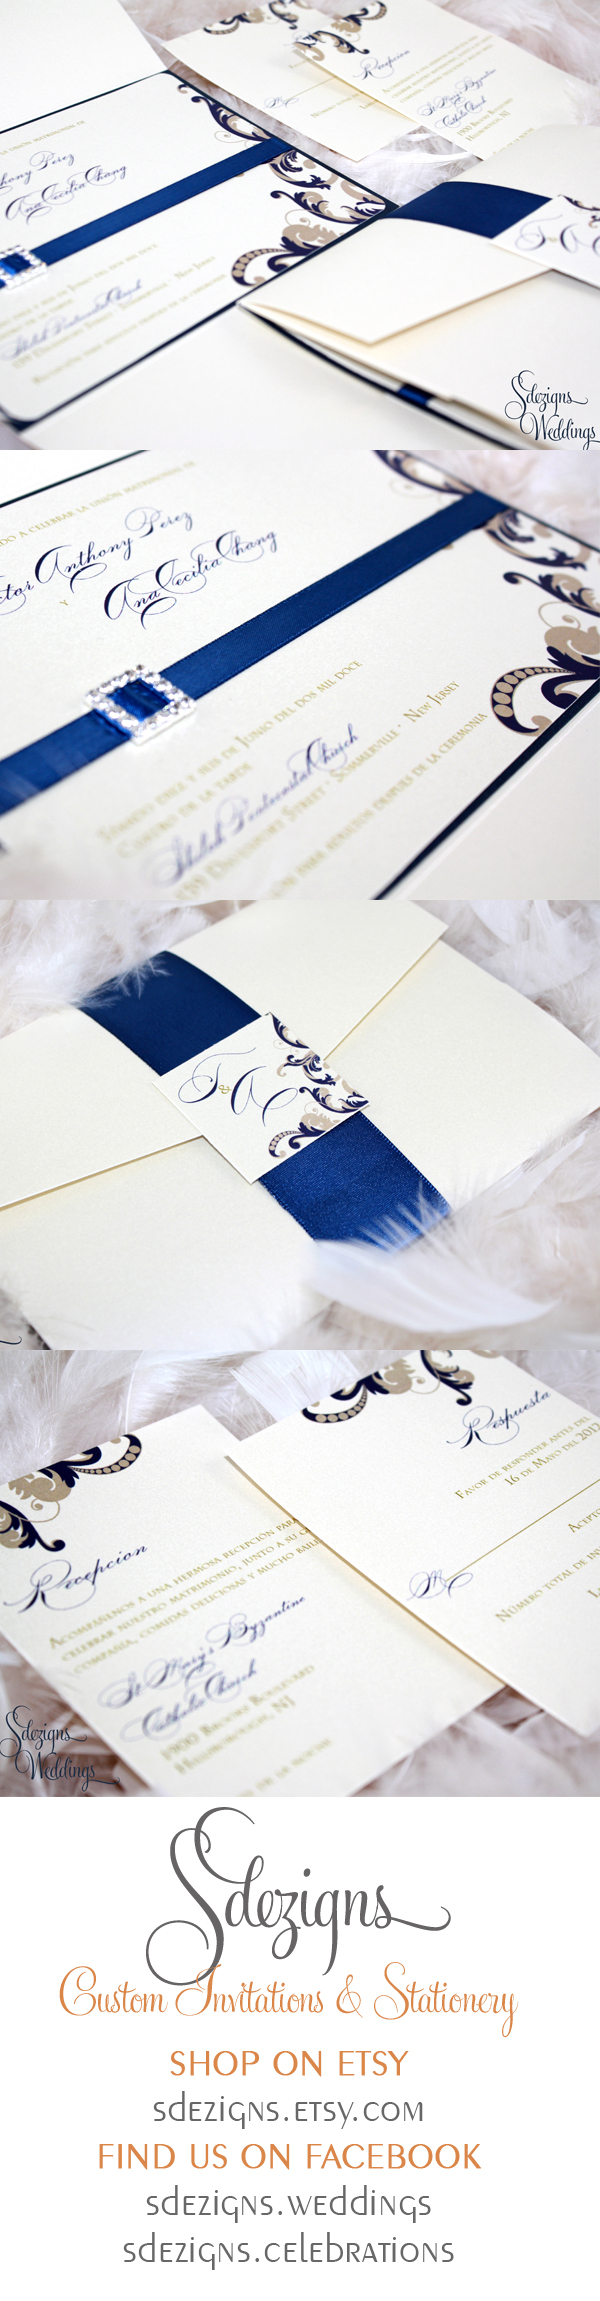 """The Ana"" - a gorgeous swirly invitation featuring a ribbon and buckle.  #invitations #weddings #nj"